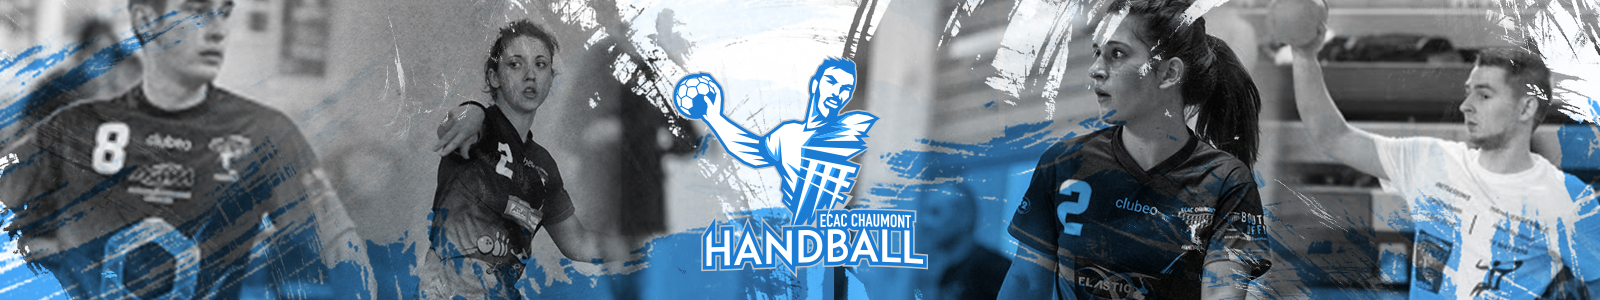 ECAC Chaumont Handball : site officiel du club de handball de Chaumont - clubeo